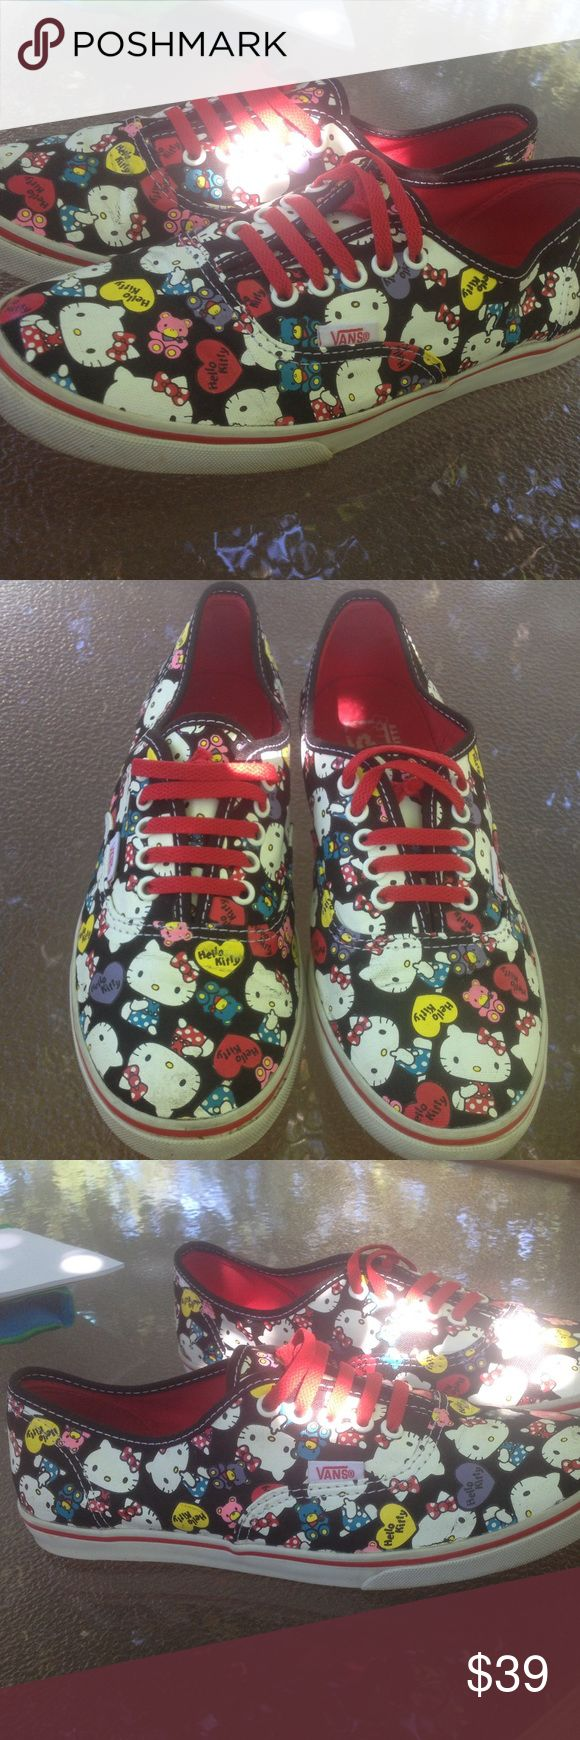 Women's Hello Kitty Vans Fashion sneakers 7.5M Women's Hello Kitty Vans Fashion sneakers 7.5M These are awesome! Vans Shoes Sneakers